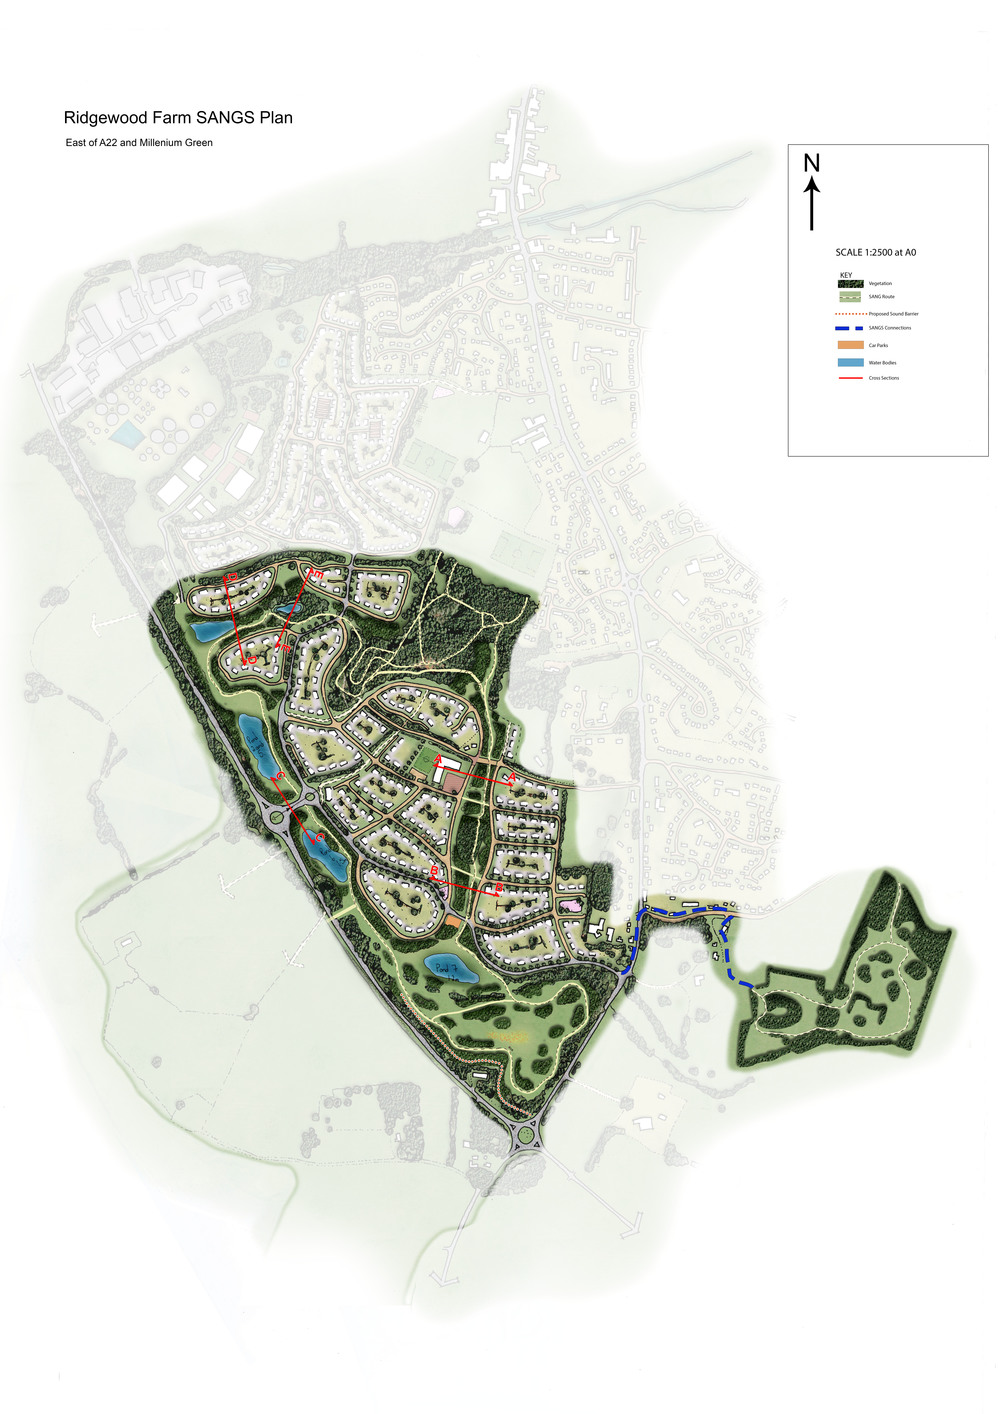 Ridgewood Farm SANGS Plan East of A22.jpg